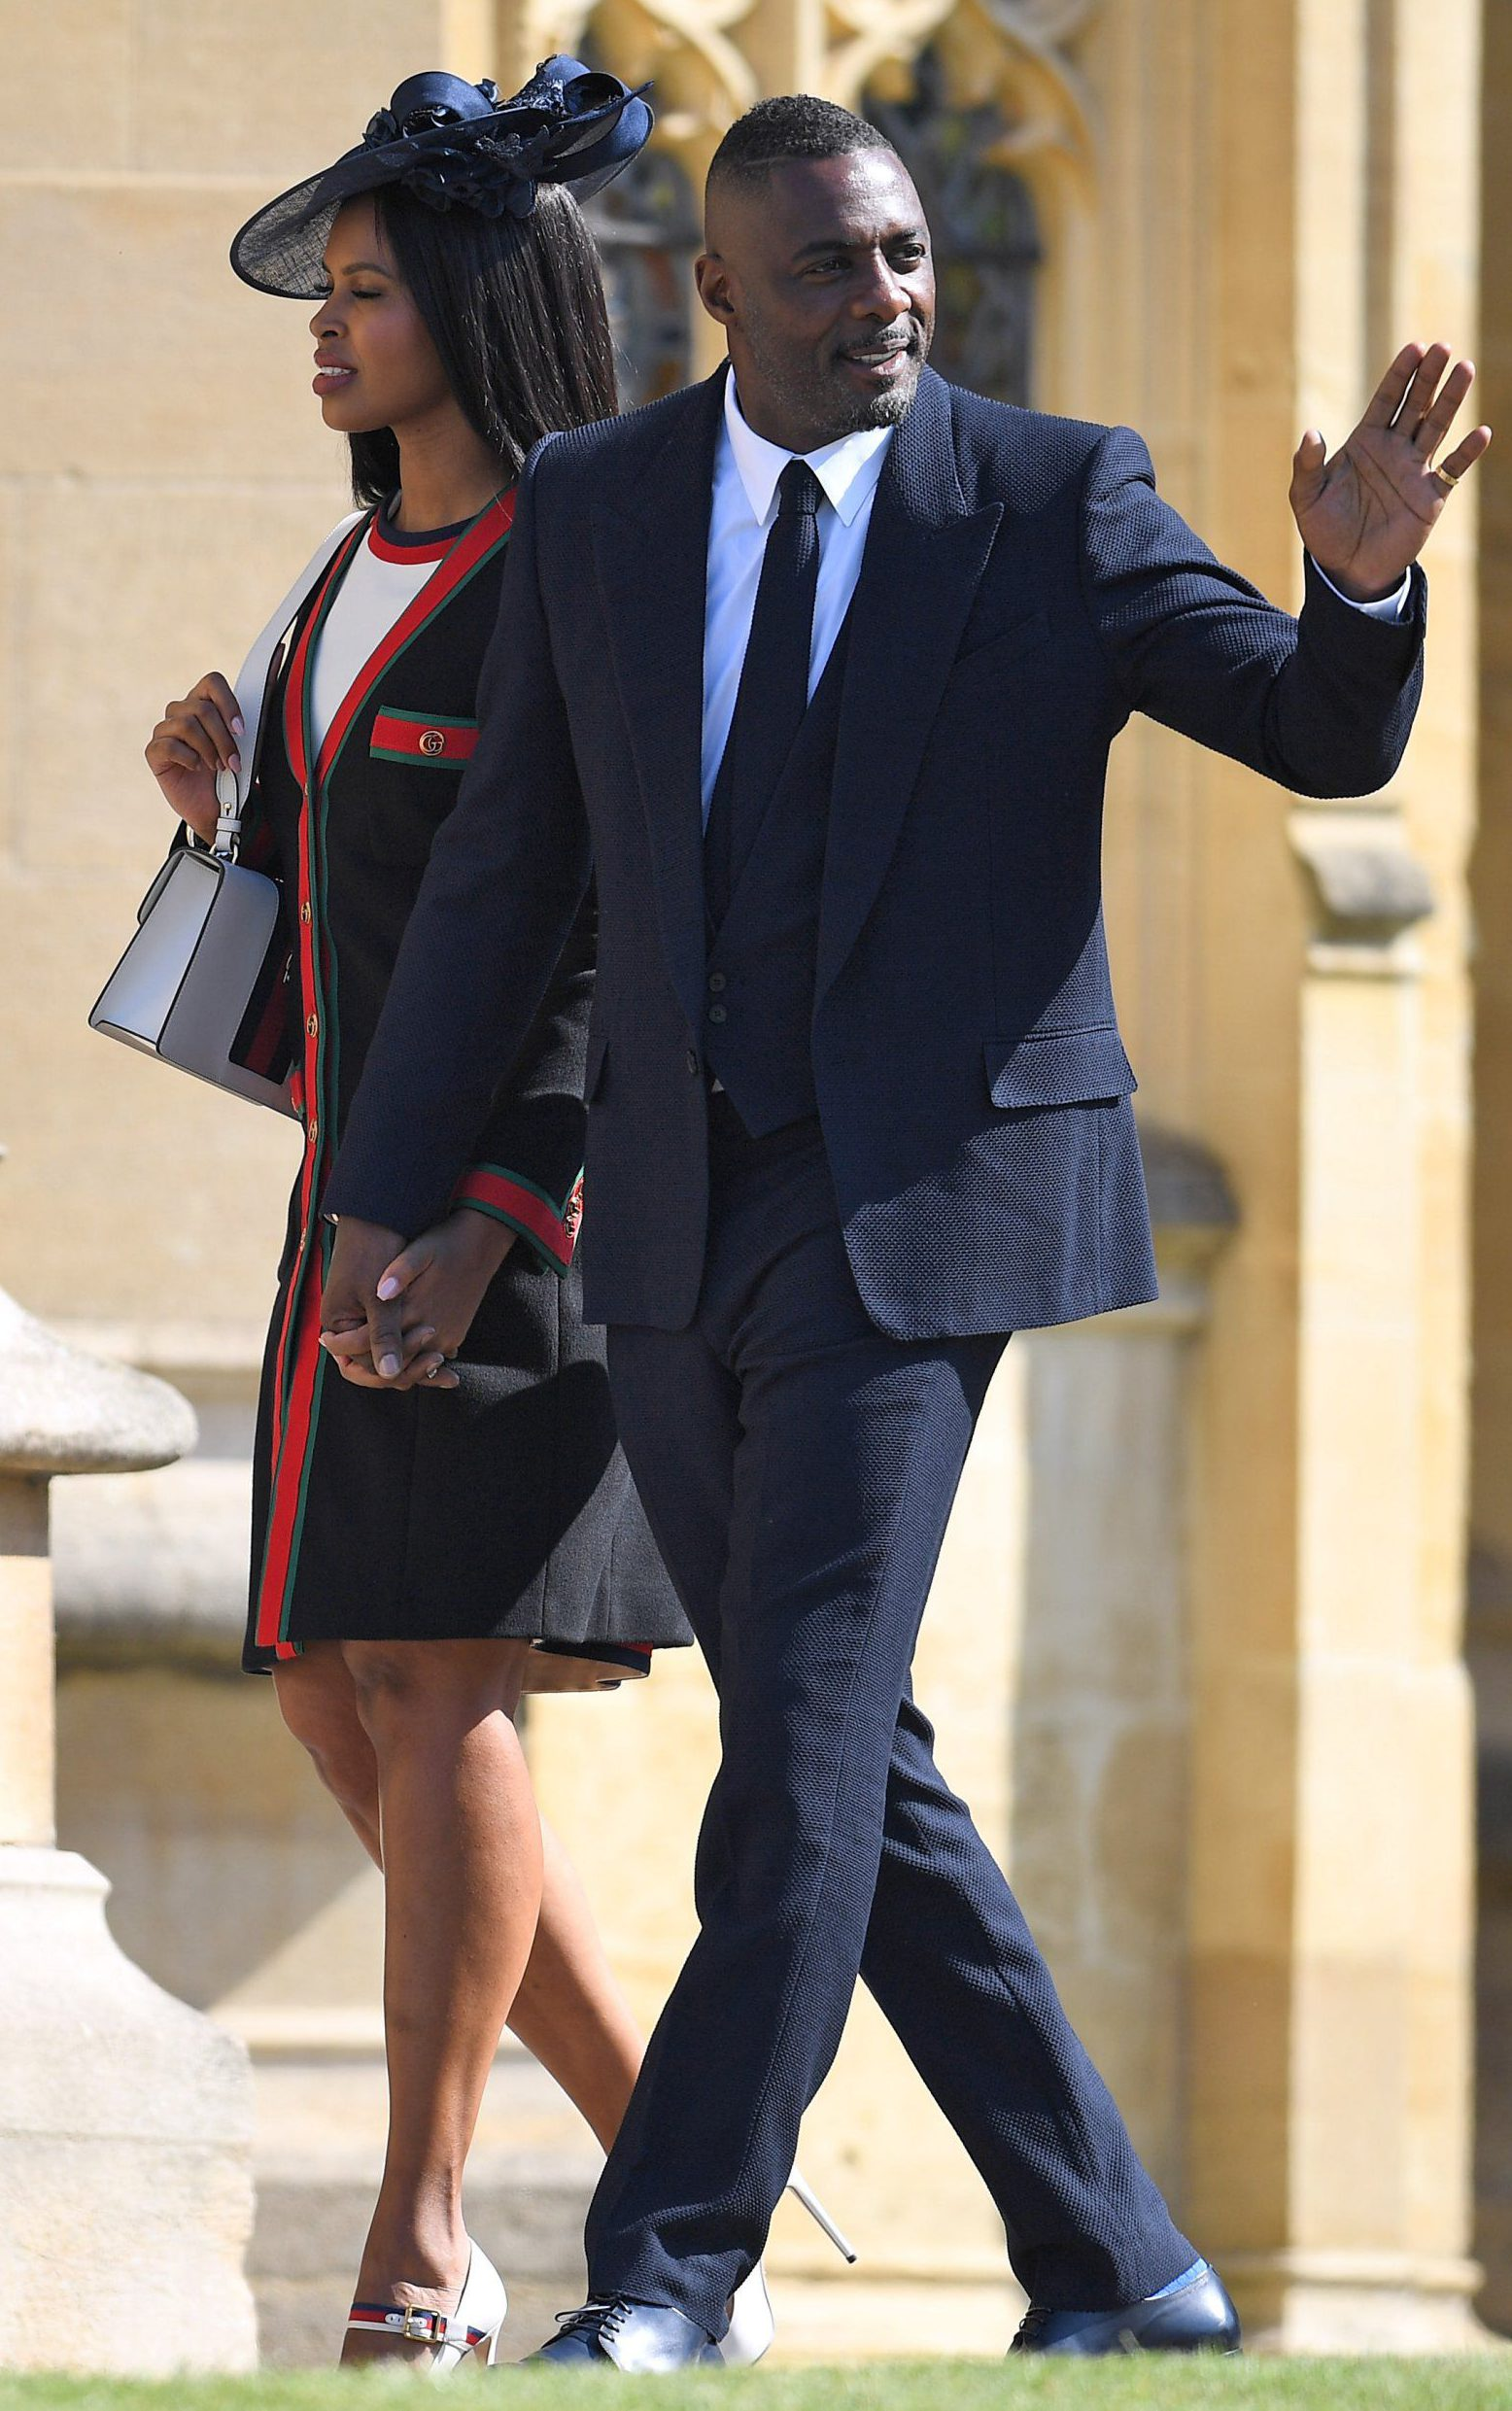 Mandatory Credit: Photo by James Gourley/REX/Shutterstock (9685475a) Idris Elba and Sabrina Dhowre The wedding of Prince Harry and Meghan Markle, Pre-Ceremony, Windsor, Berkshire, UK - 19 May 2018